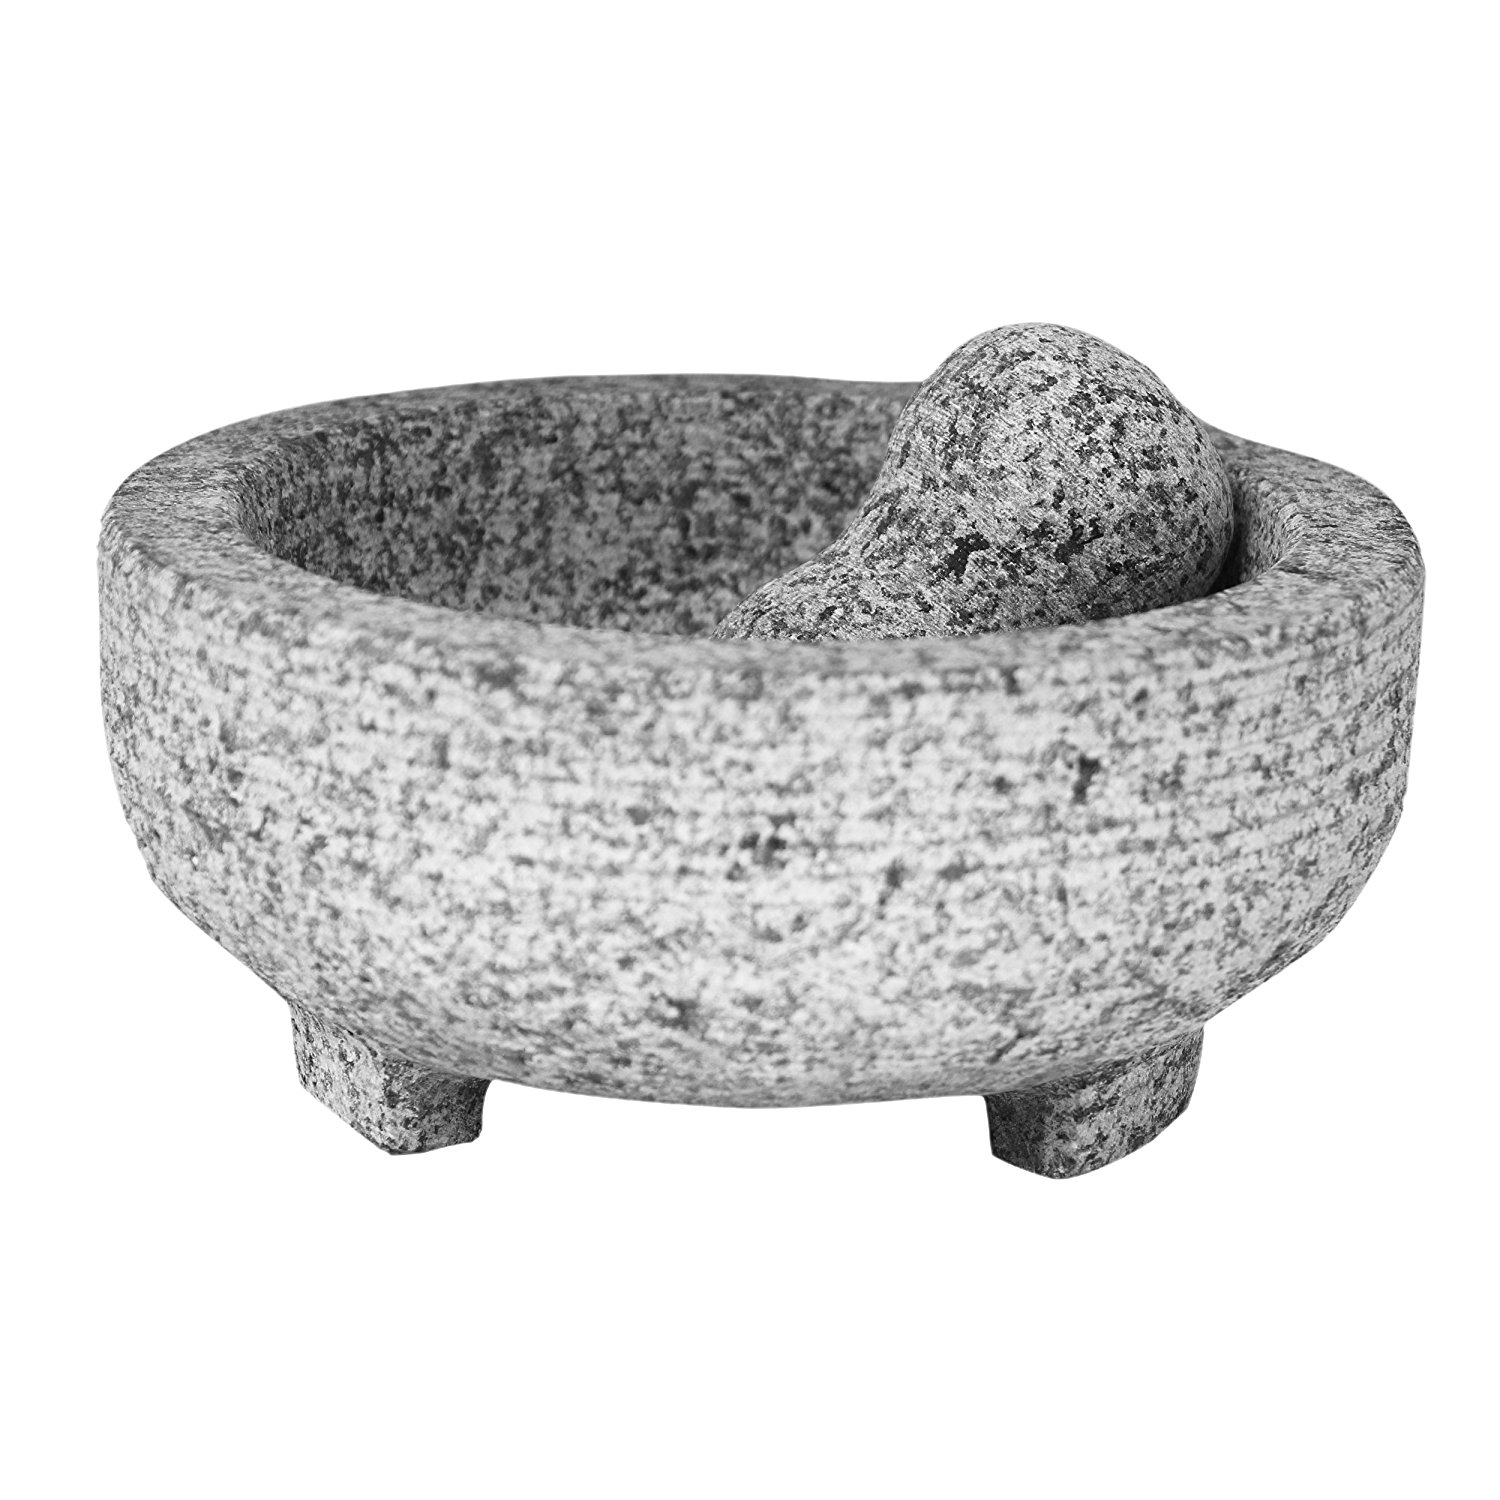 4-Cup Granite Molcajete Mortar and Pestle, Enjoy an authe...